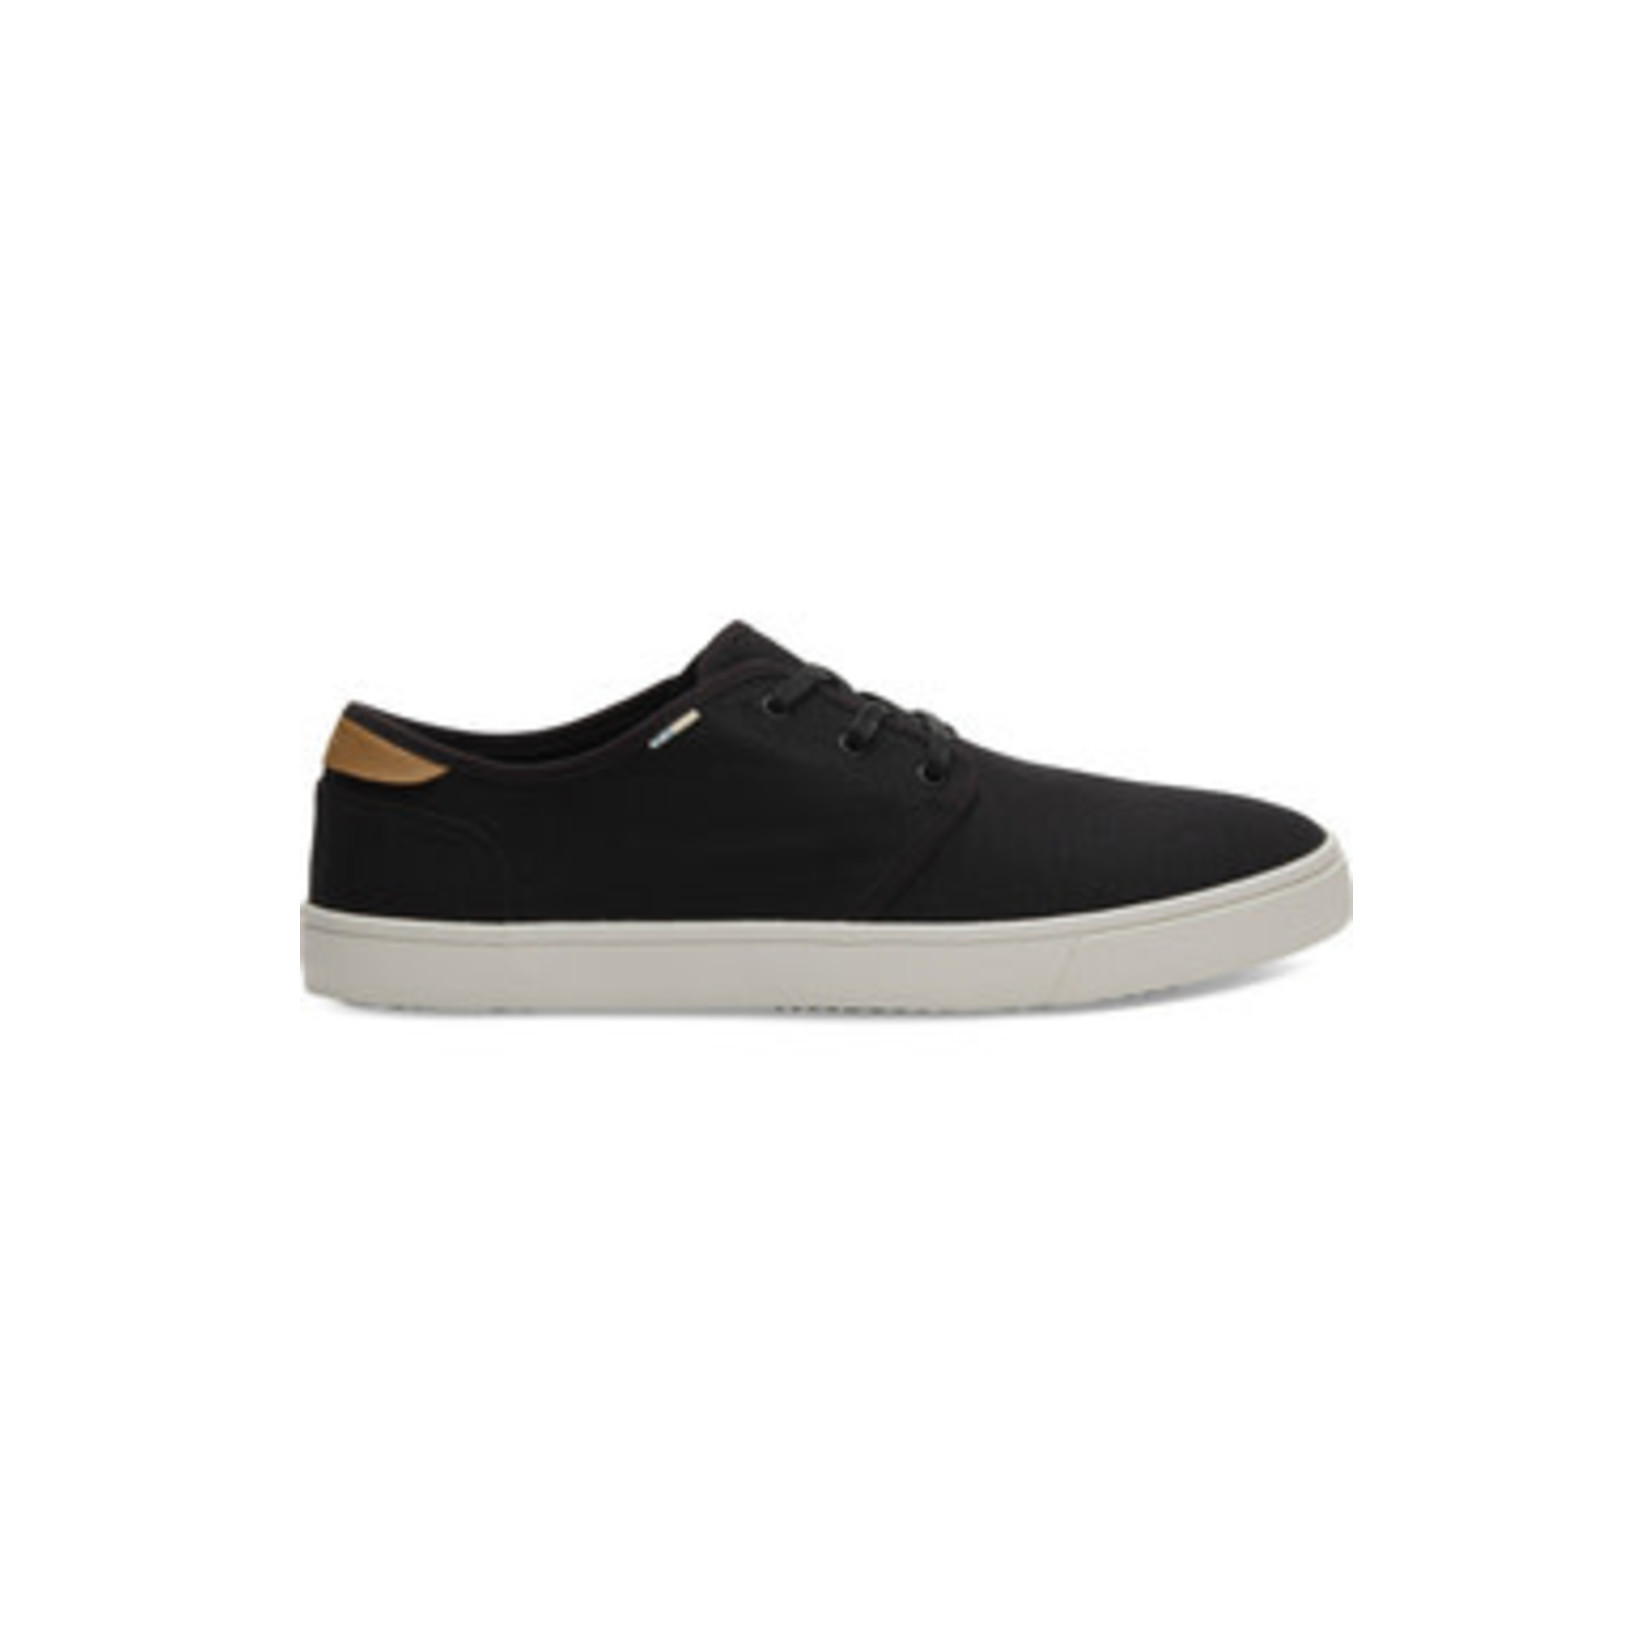 Toms Toms Casual Shoes, Carlo Sneaker, Mens